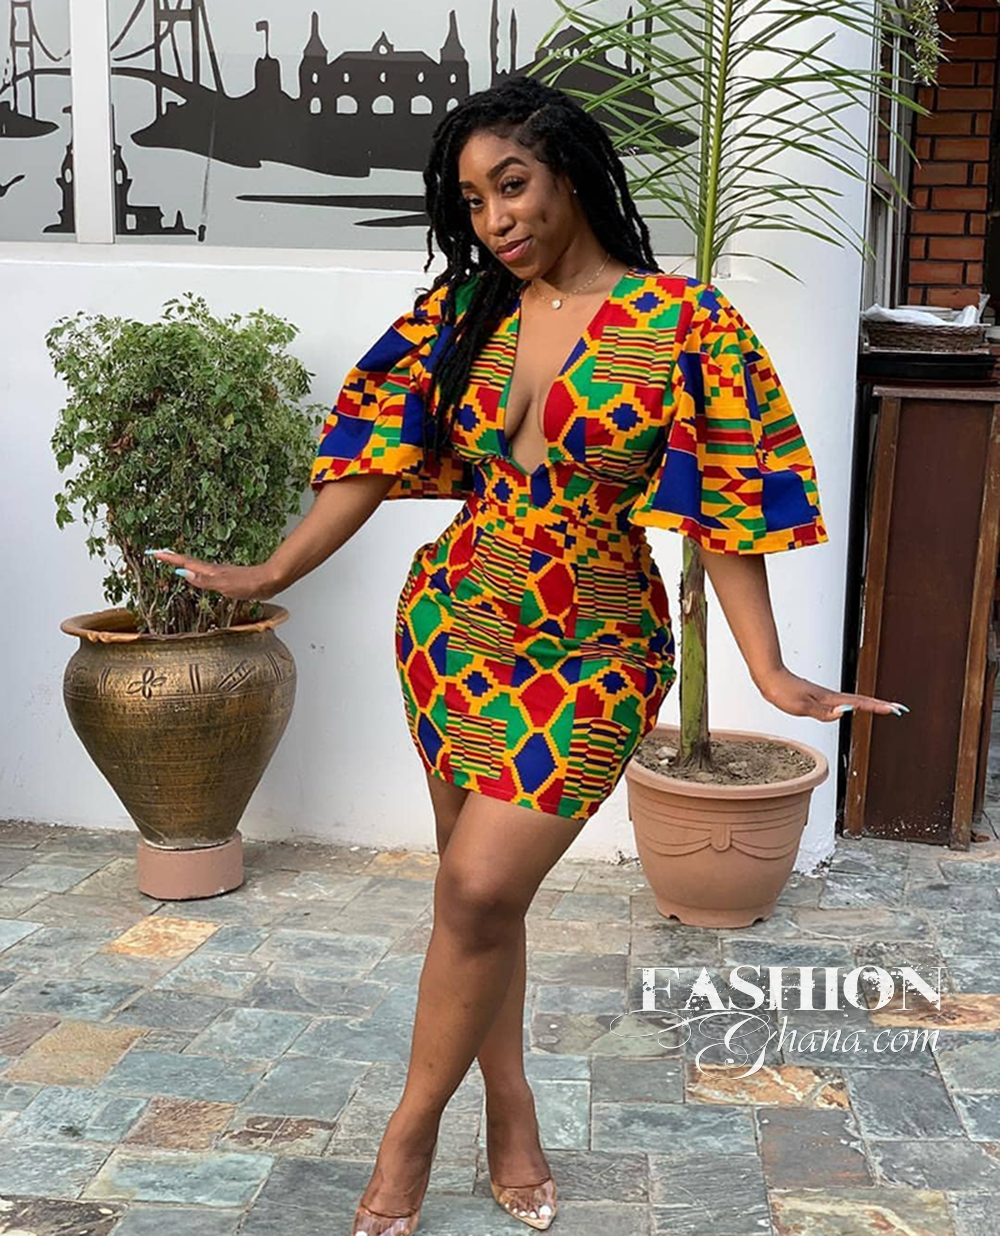 #fGSTYLE: Kente Print Is Trending Again, Thanks To The Power Of Cleavage And Low V Neckline | FashionGHANA.com: 100% African Fashion